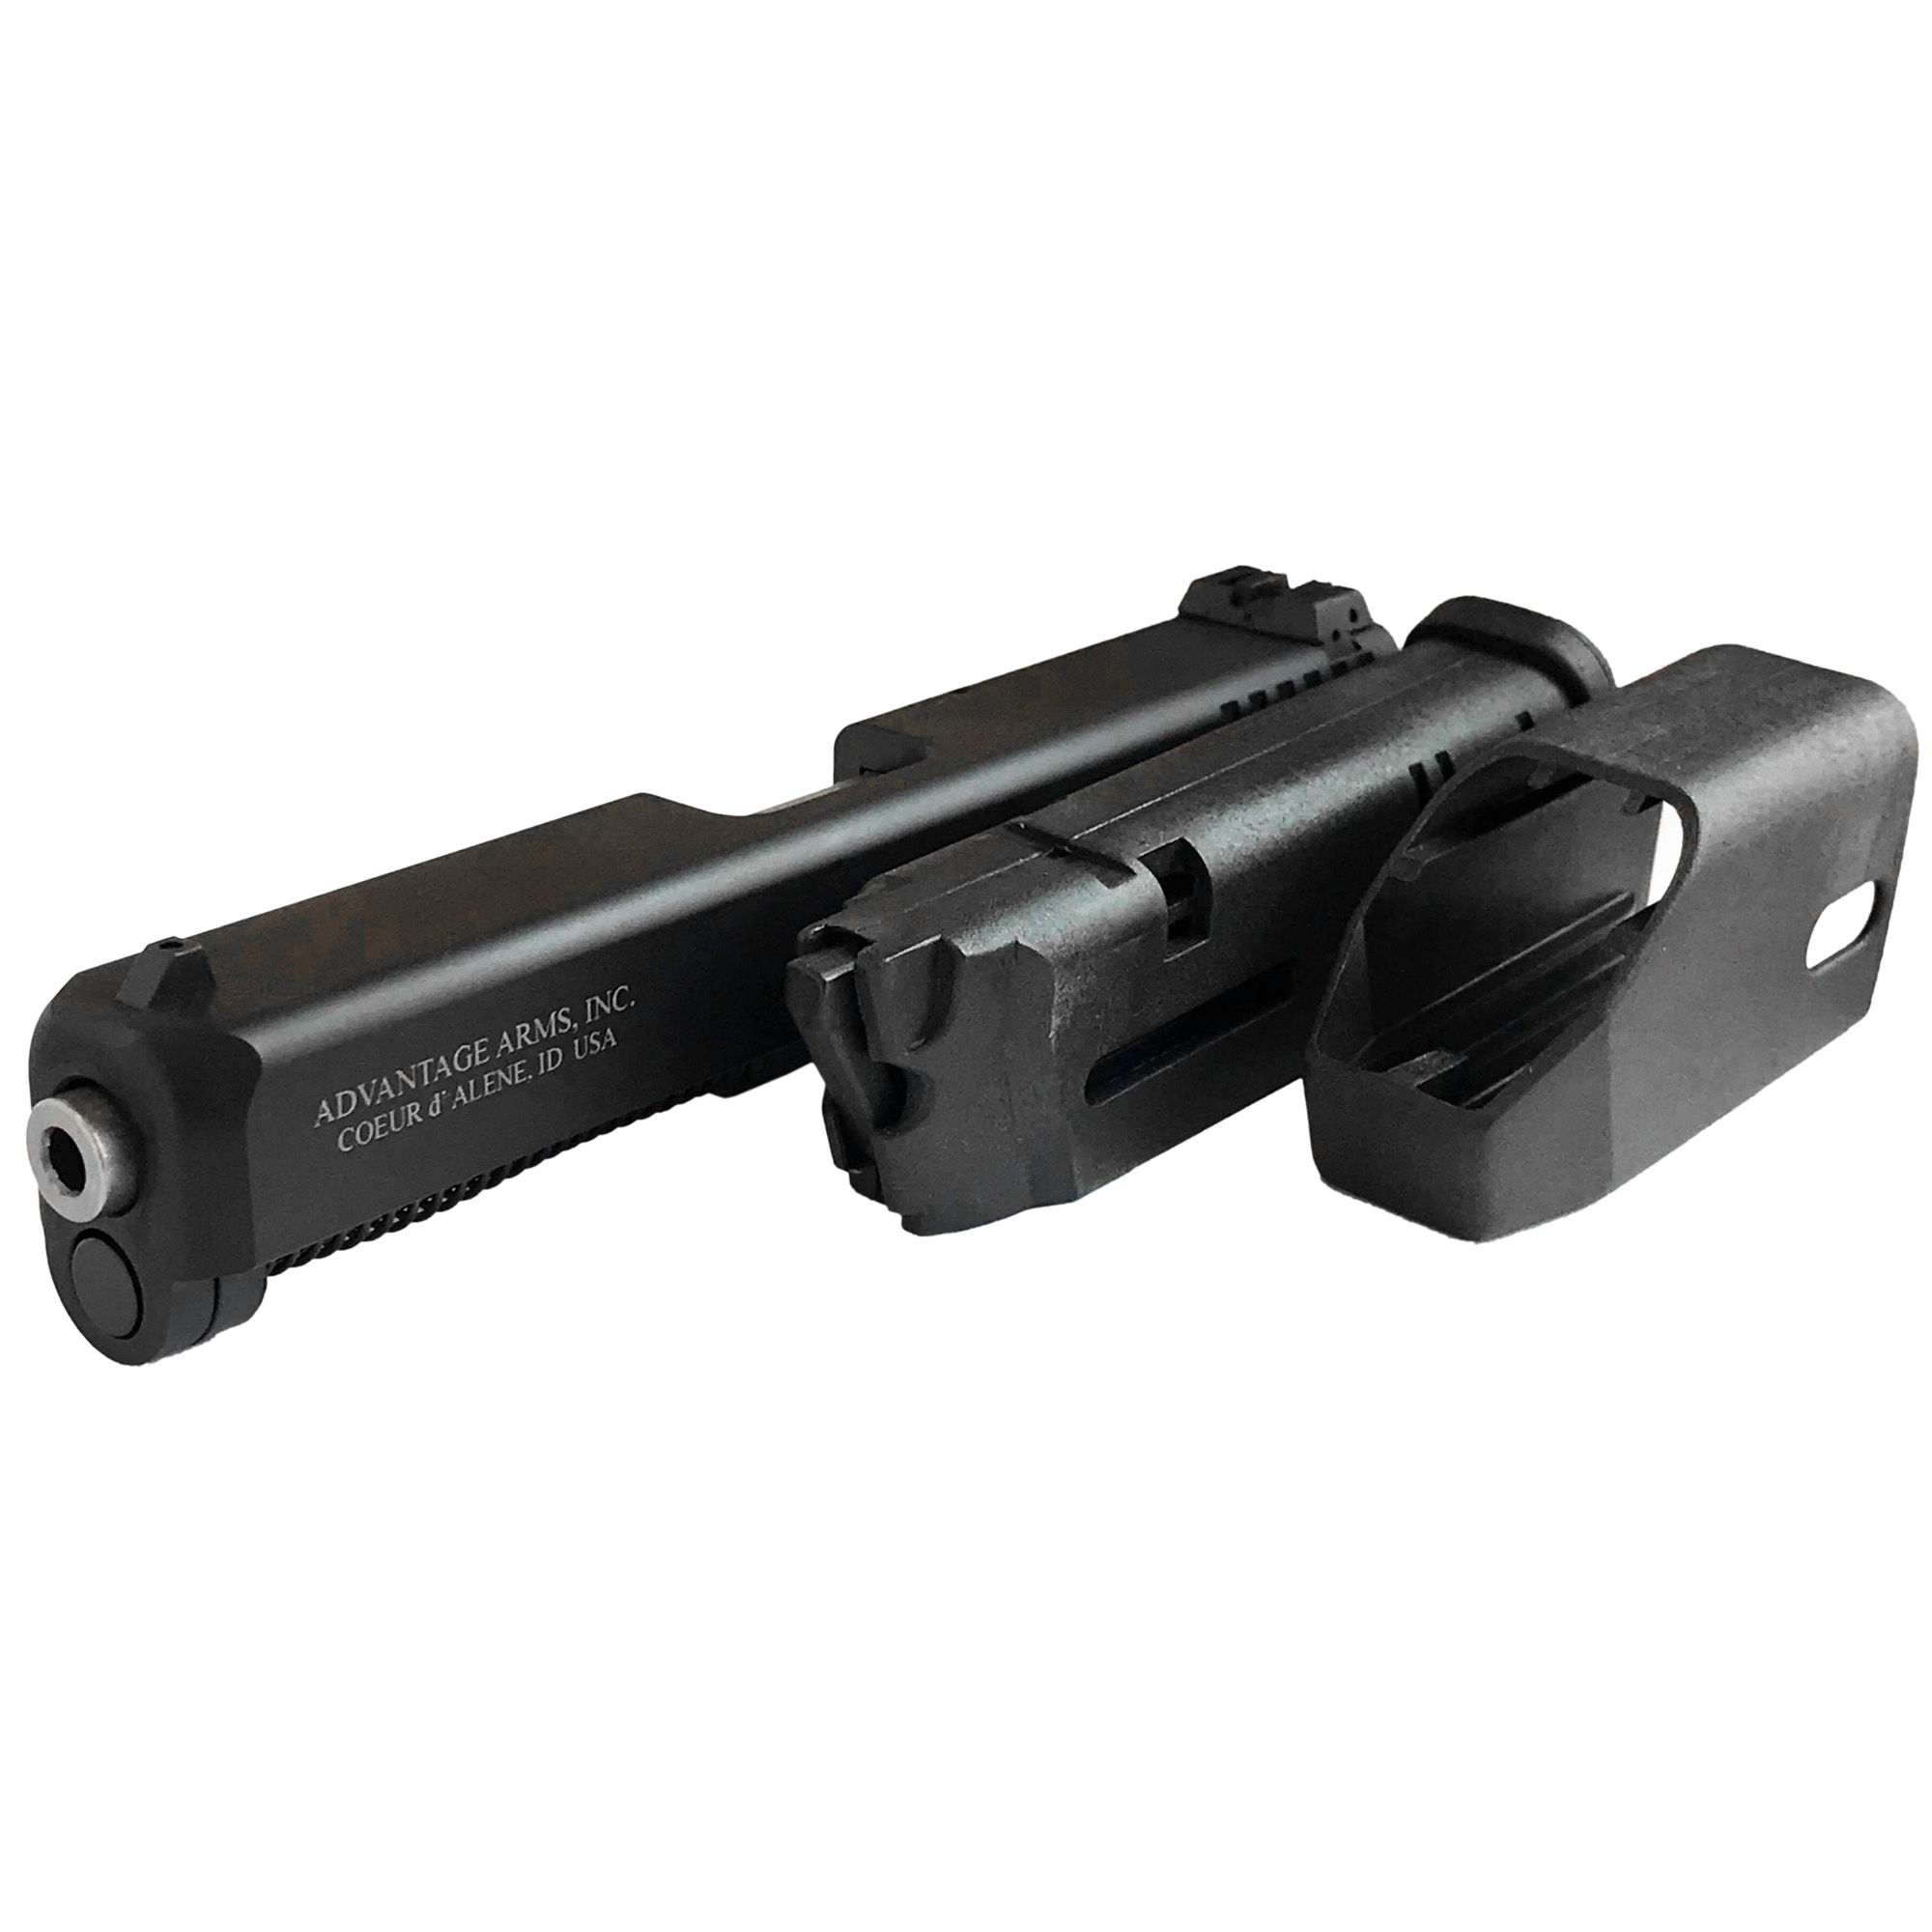 Convert your Glock into a .22 or with an Advantage Arms conversion kit. Advantage Arms Glock Conversion Kit is Advantage Arms most accurate conversion kit for Glock.